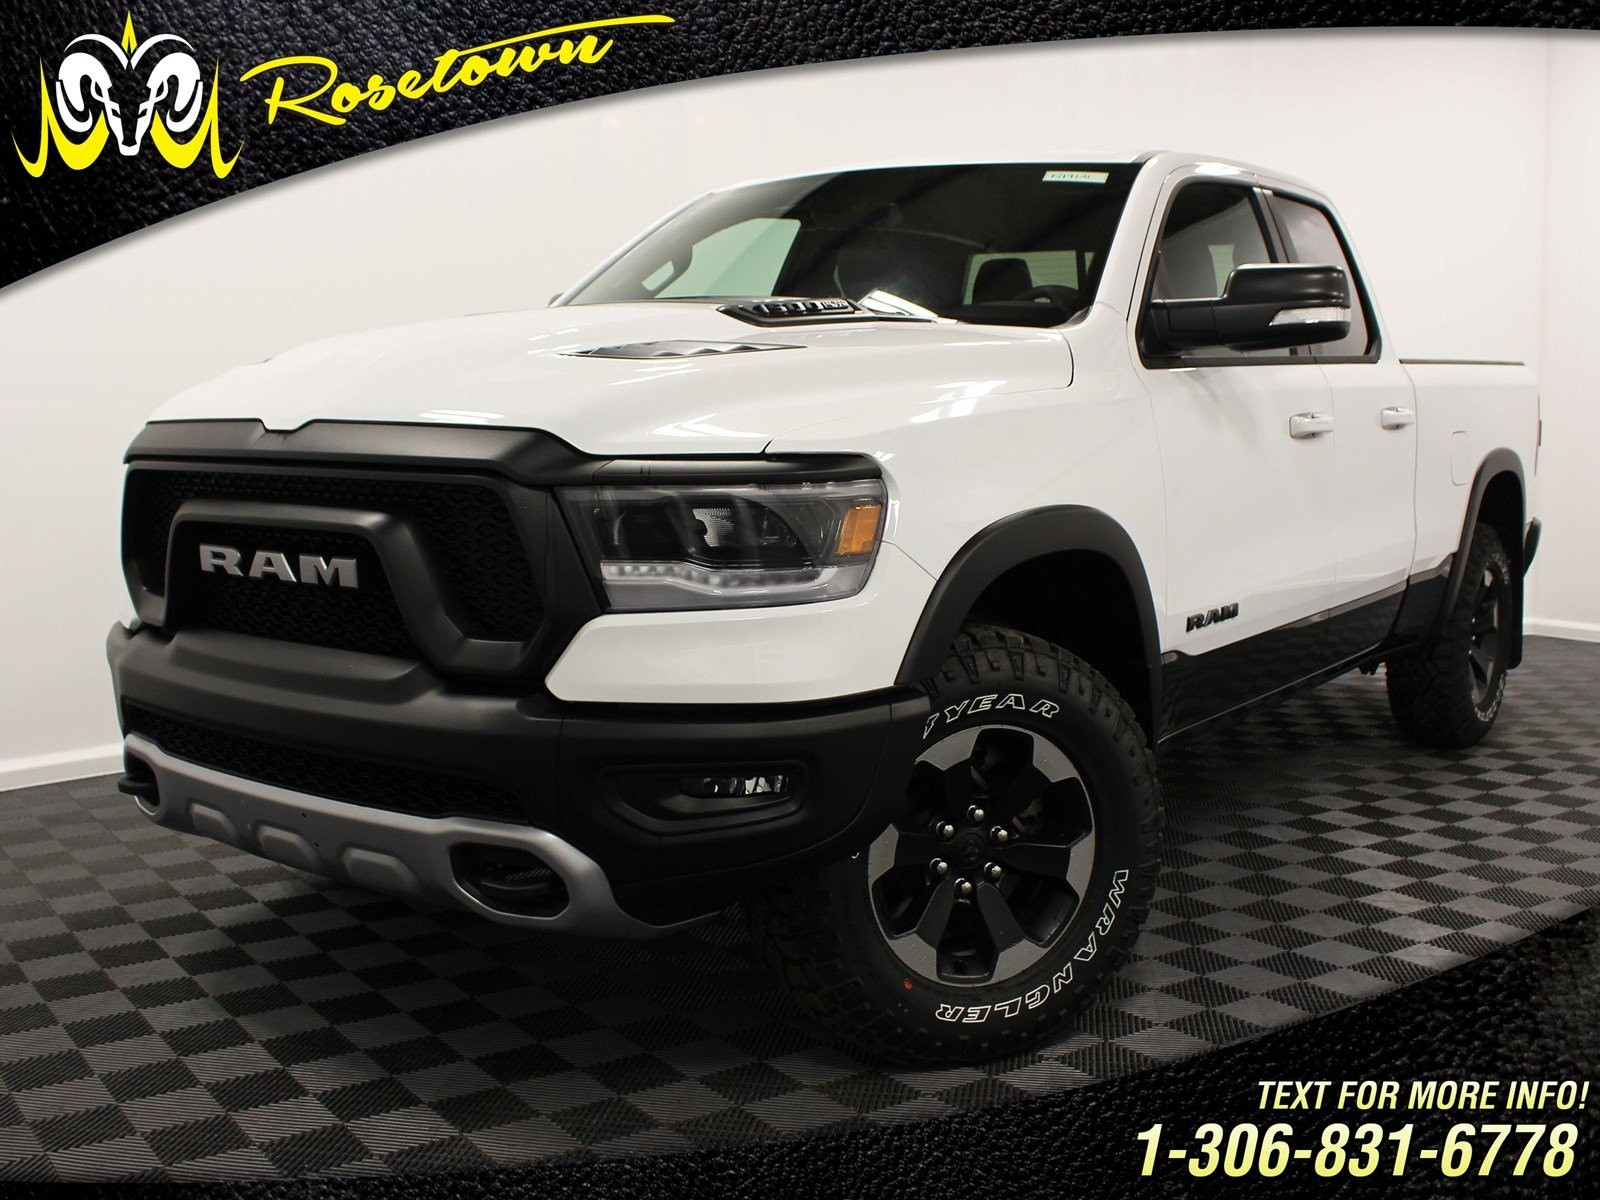 Tailight Wiring for 2016 Ram Rebel for Reverse New 2019 Ram 1500 Rebel Cd Player Bluetooth Remote Start Flaps Of Tailight Wiring for 2016 Ram Rebel for Reverse